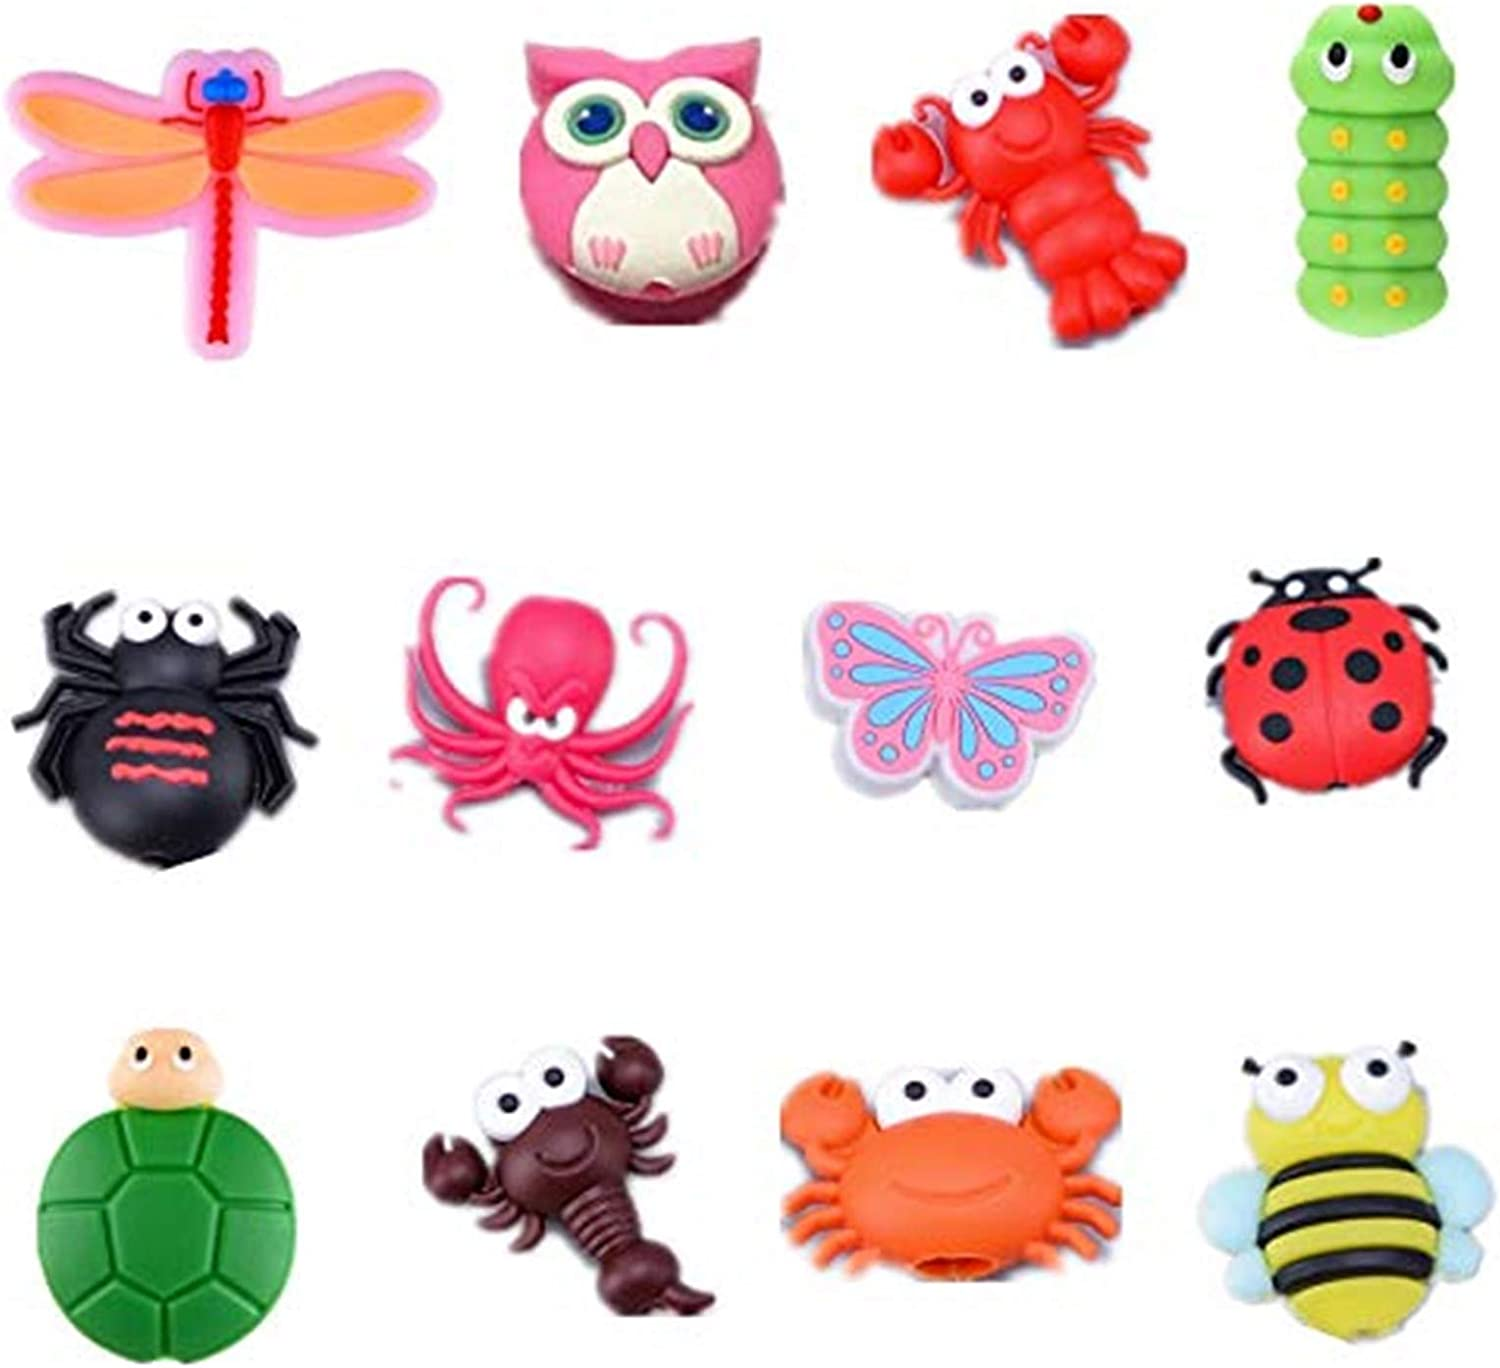 12 Pcs Charger Cable Protectors Prevent Cable Break for iPhone/iPad/Airpods/iwatch, Cute Animal Shape USB Charger Cable Saver Bites Cable Protector Cute Cartoon Anti-Broken Phone Cord Set (12 Pieces)